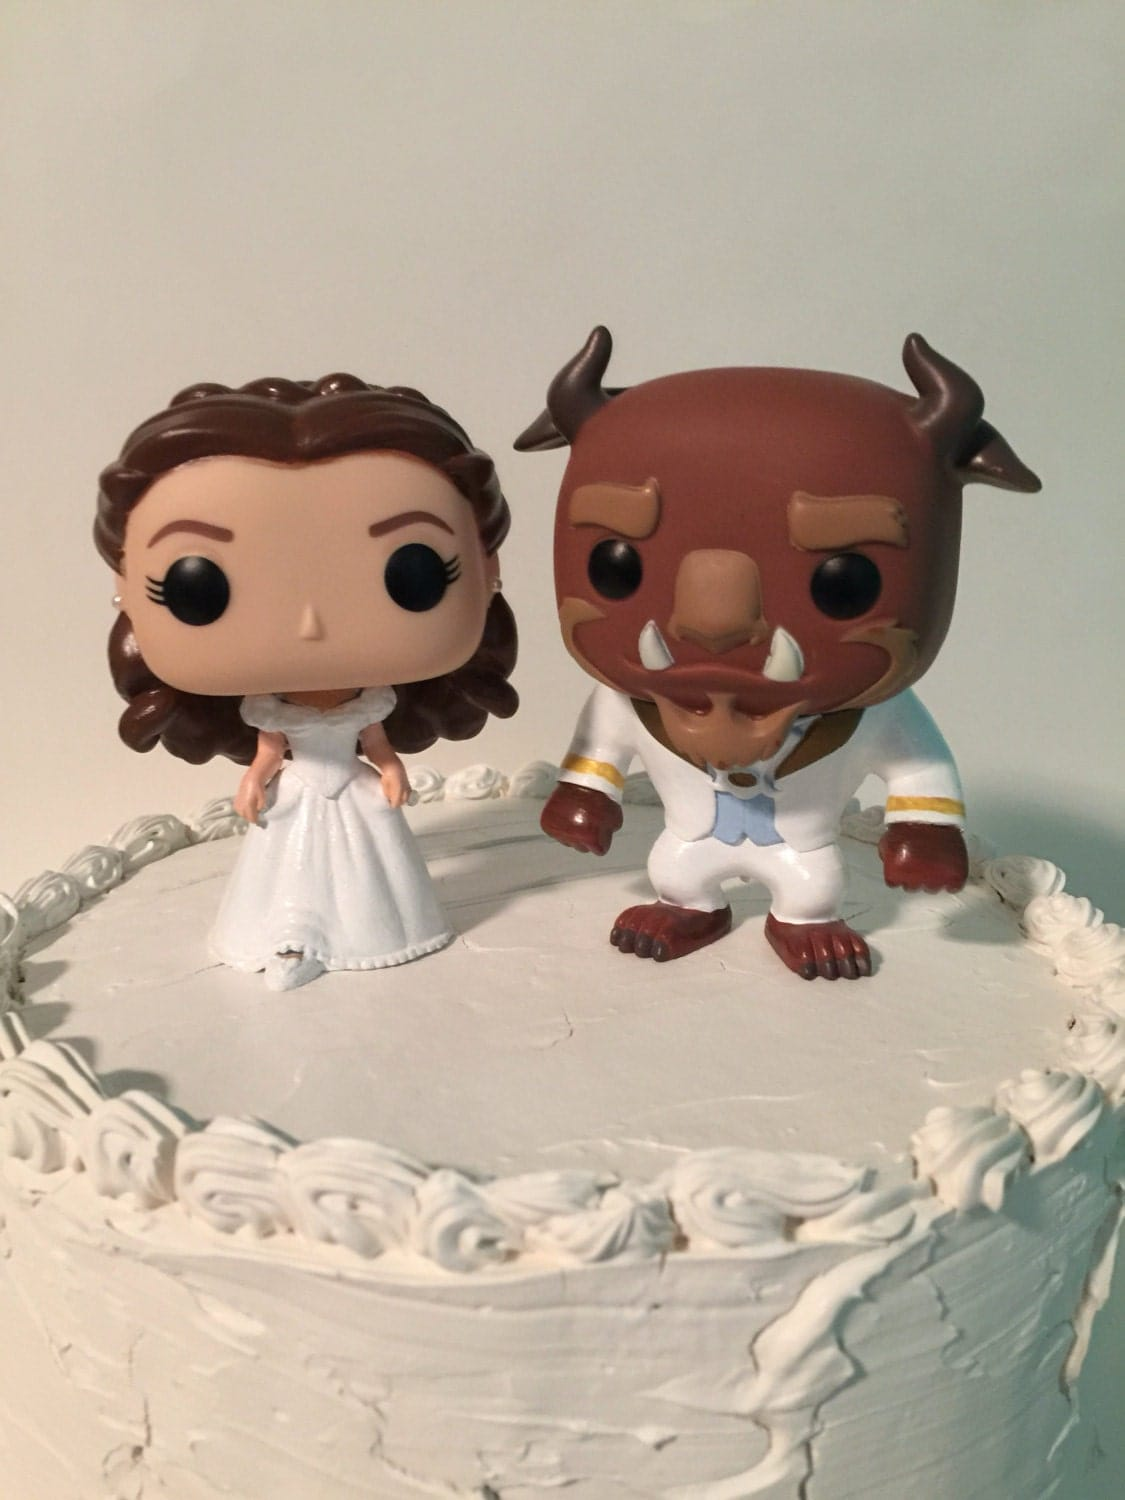 Custom Funko Pop Beauty And The Beast Wedding Cake Topper Set